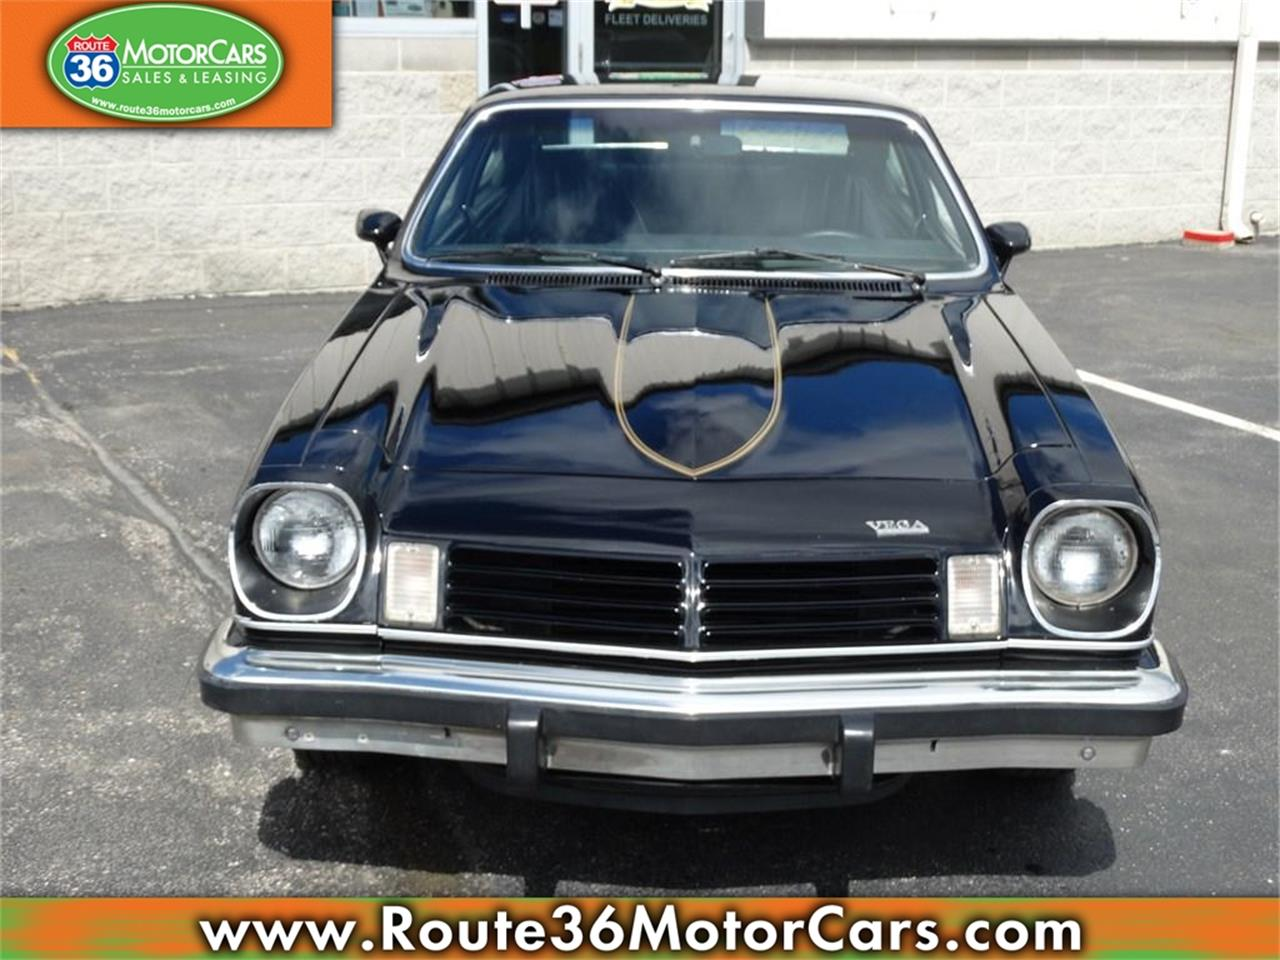 Large Picture of 1975 Chevrolet Vega located in Dublin Ohio - $10,475.00 - IKGX